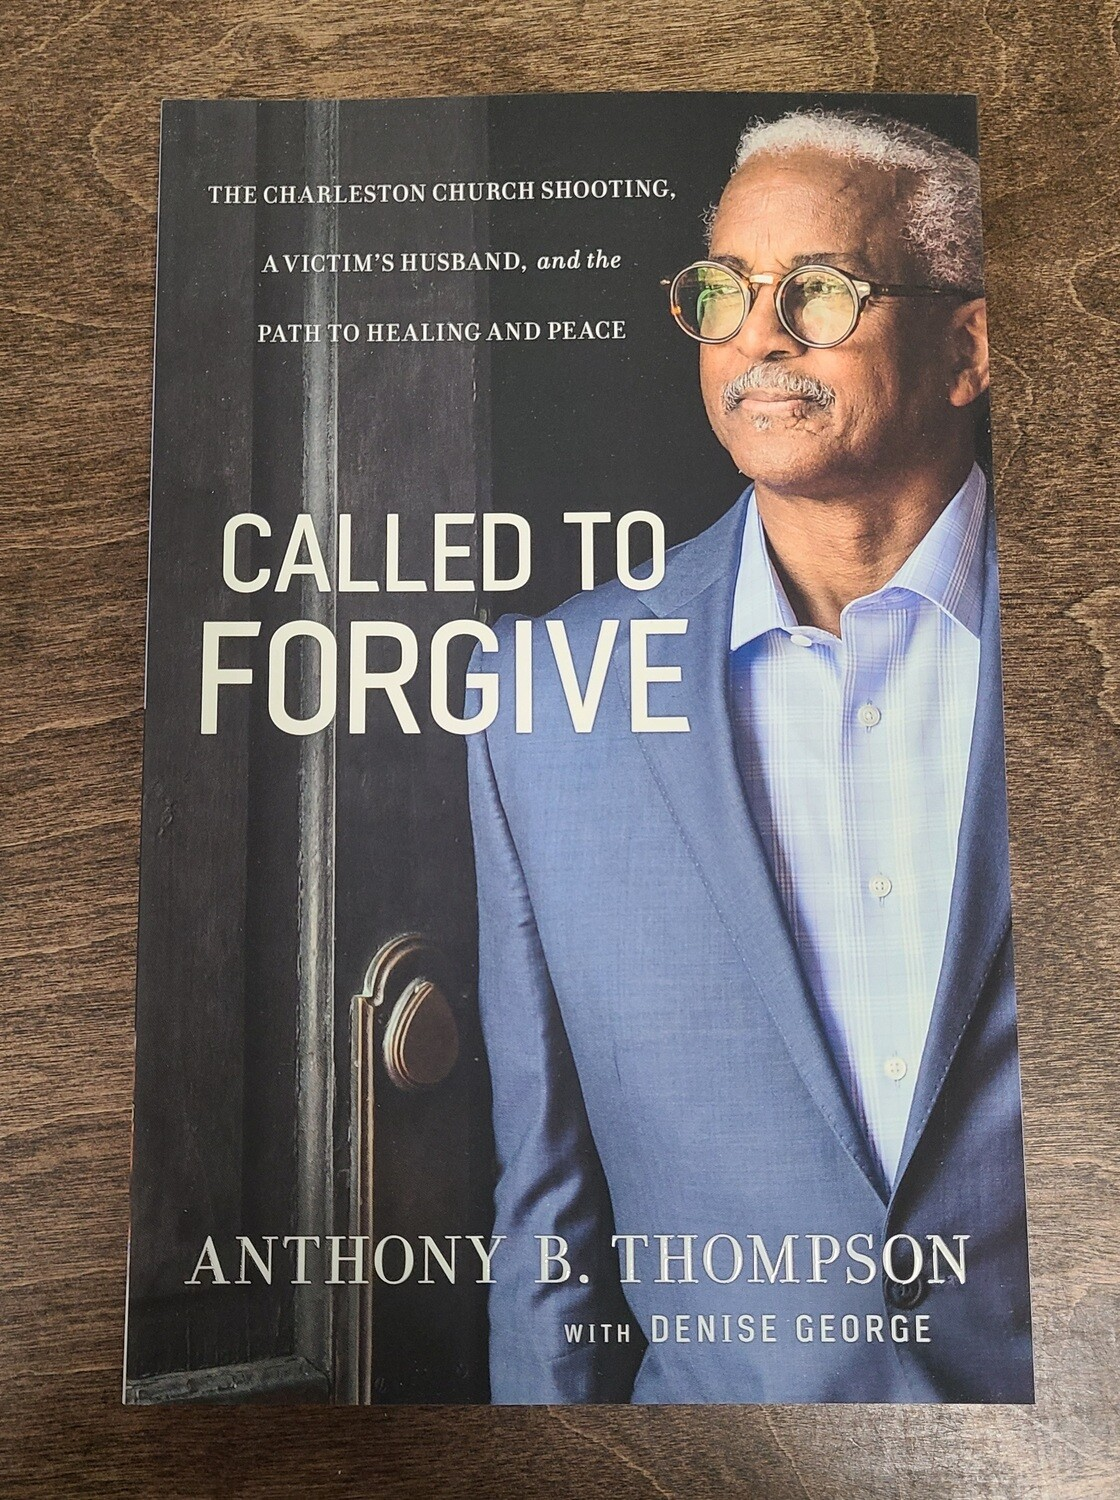 Called to Forgive by Anthony B. Thompson with Denise George